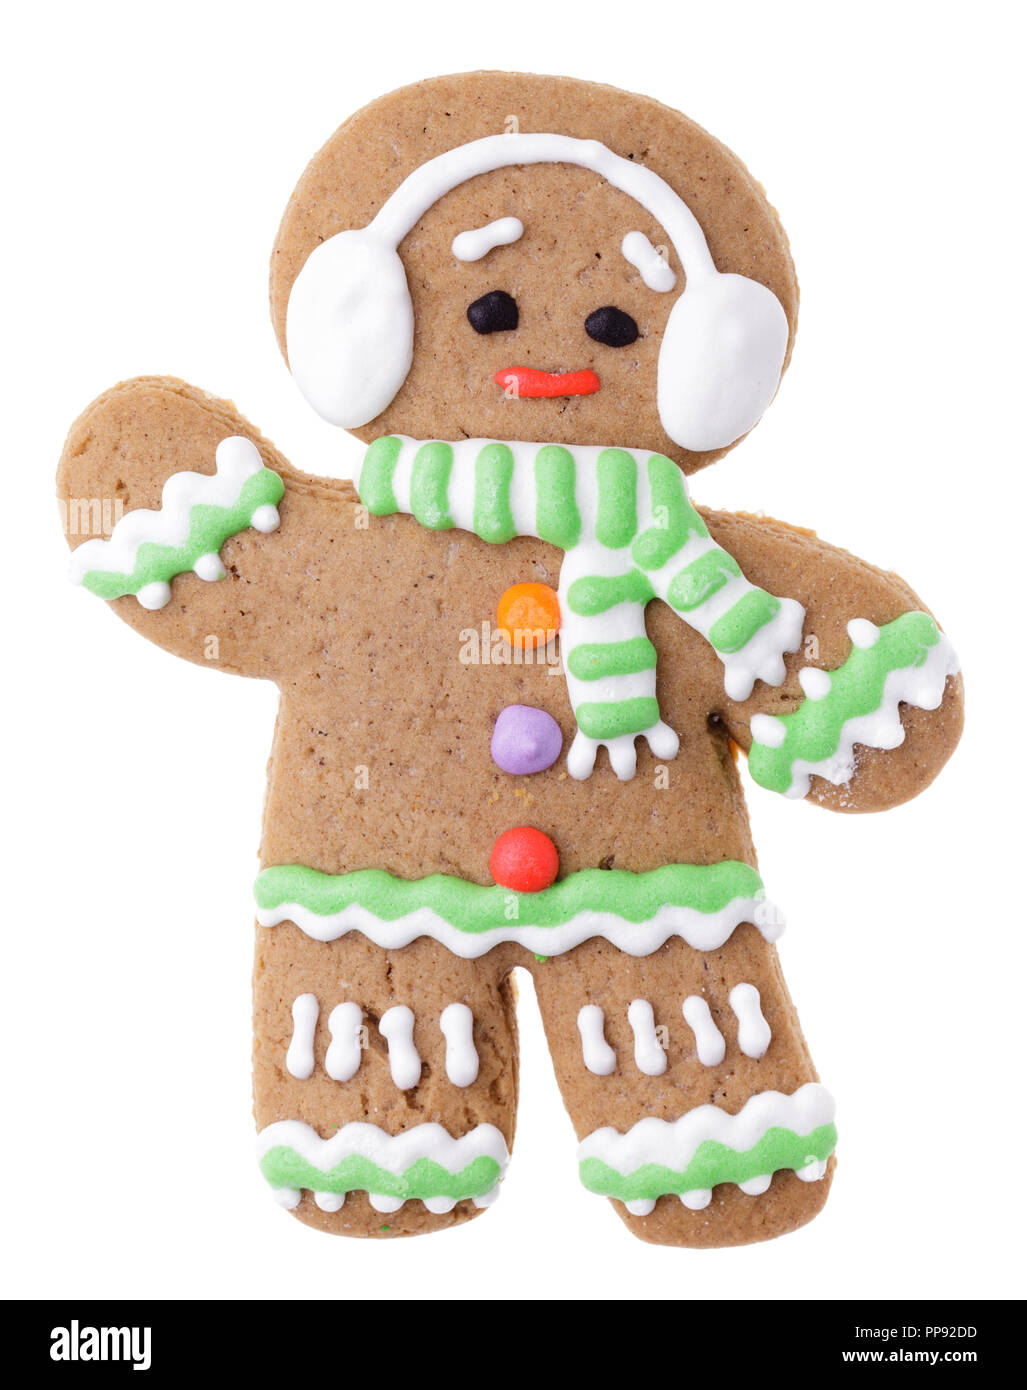 iced christmas gingerbread man sugar cookie isolated on white background